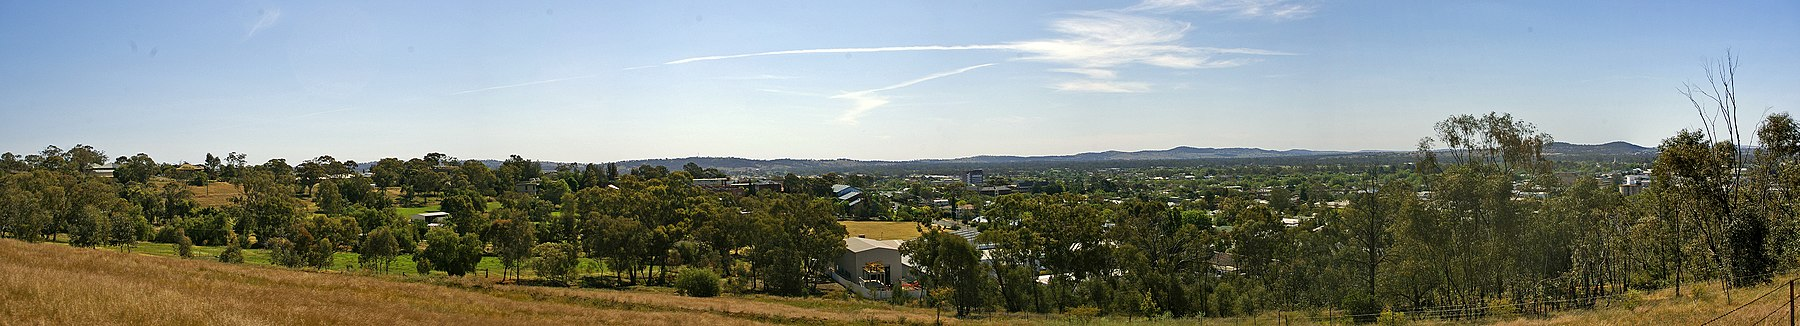 Looking Over Wagga Wagga